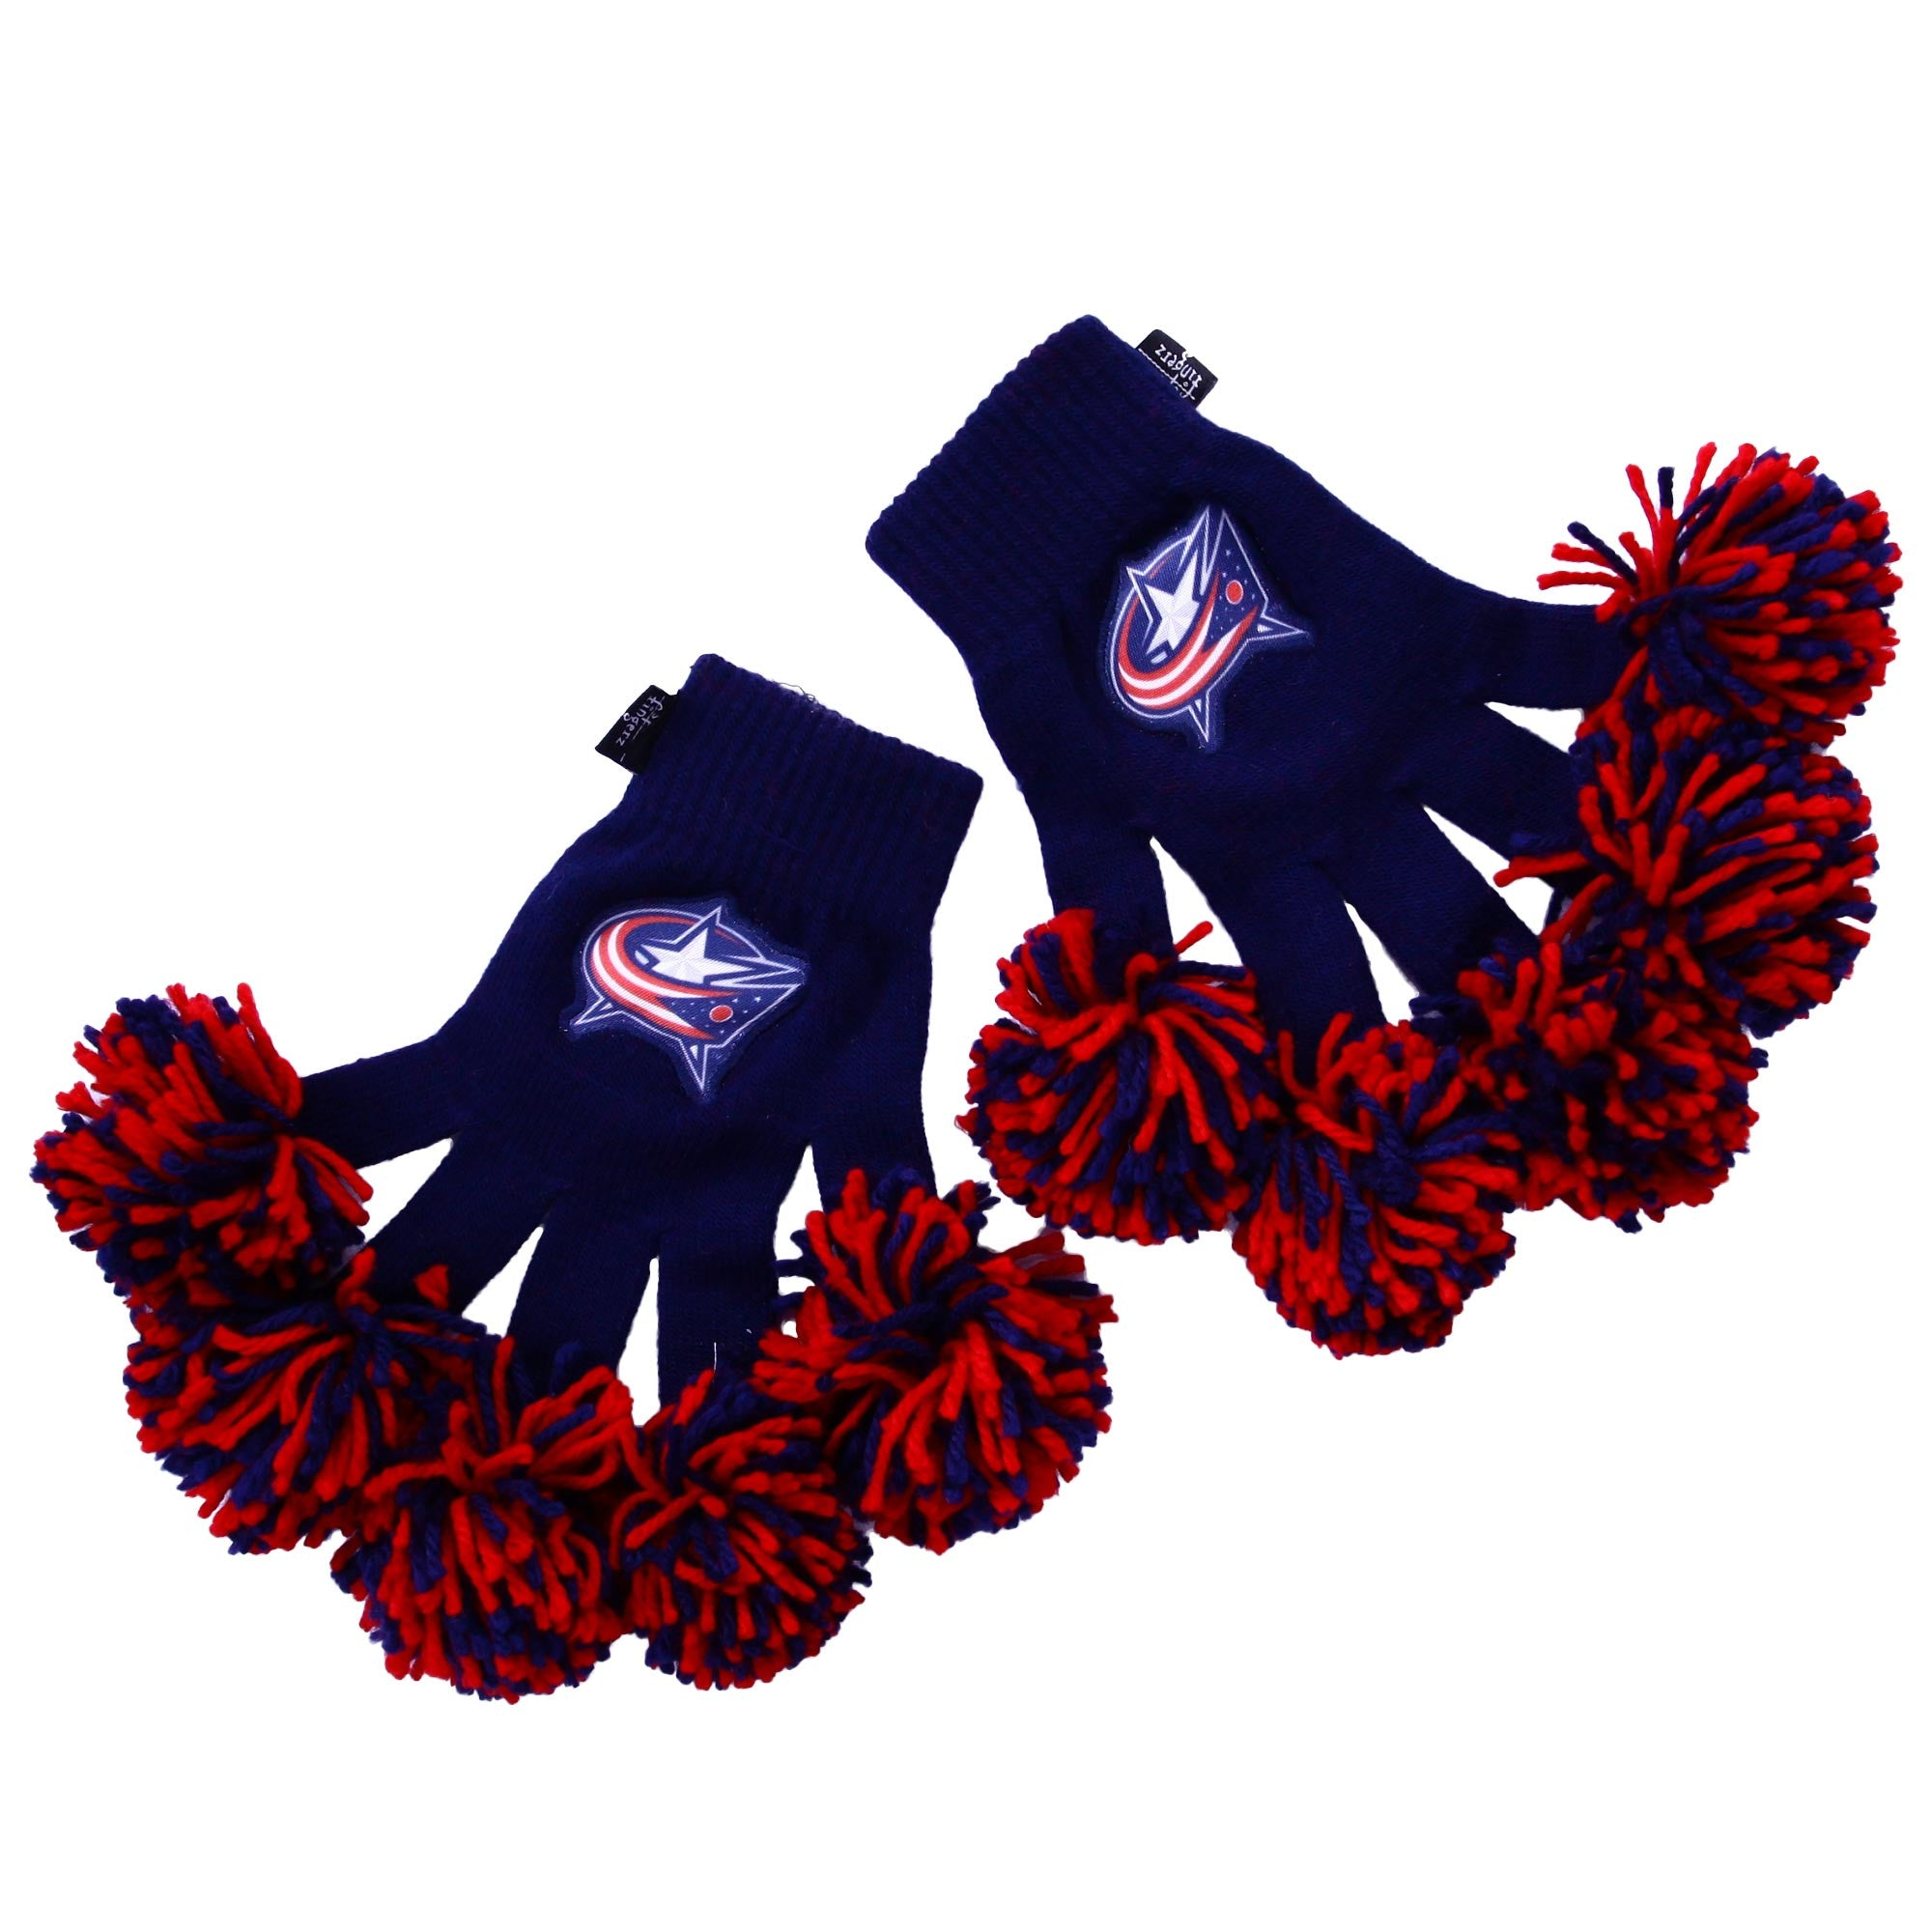 Columbus Blue Jackets NHL Spirit Fingerz Cheerleading Pom-Pom Gloves